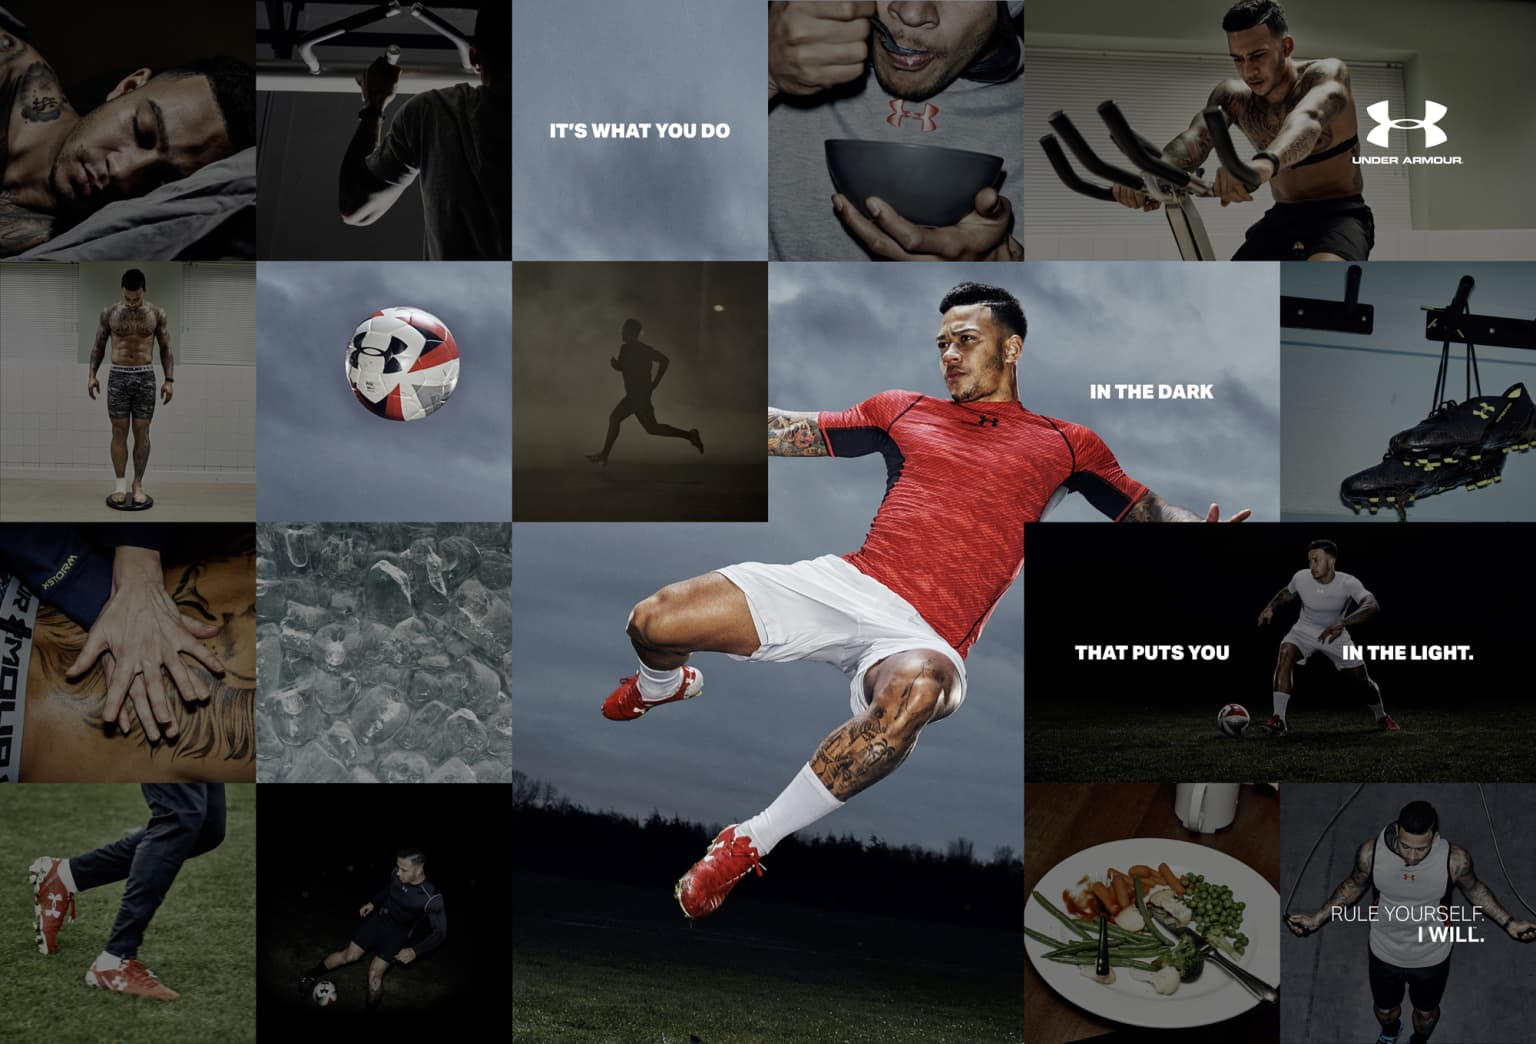 Under Armour RULE YOURSELF Campaign